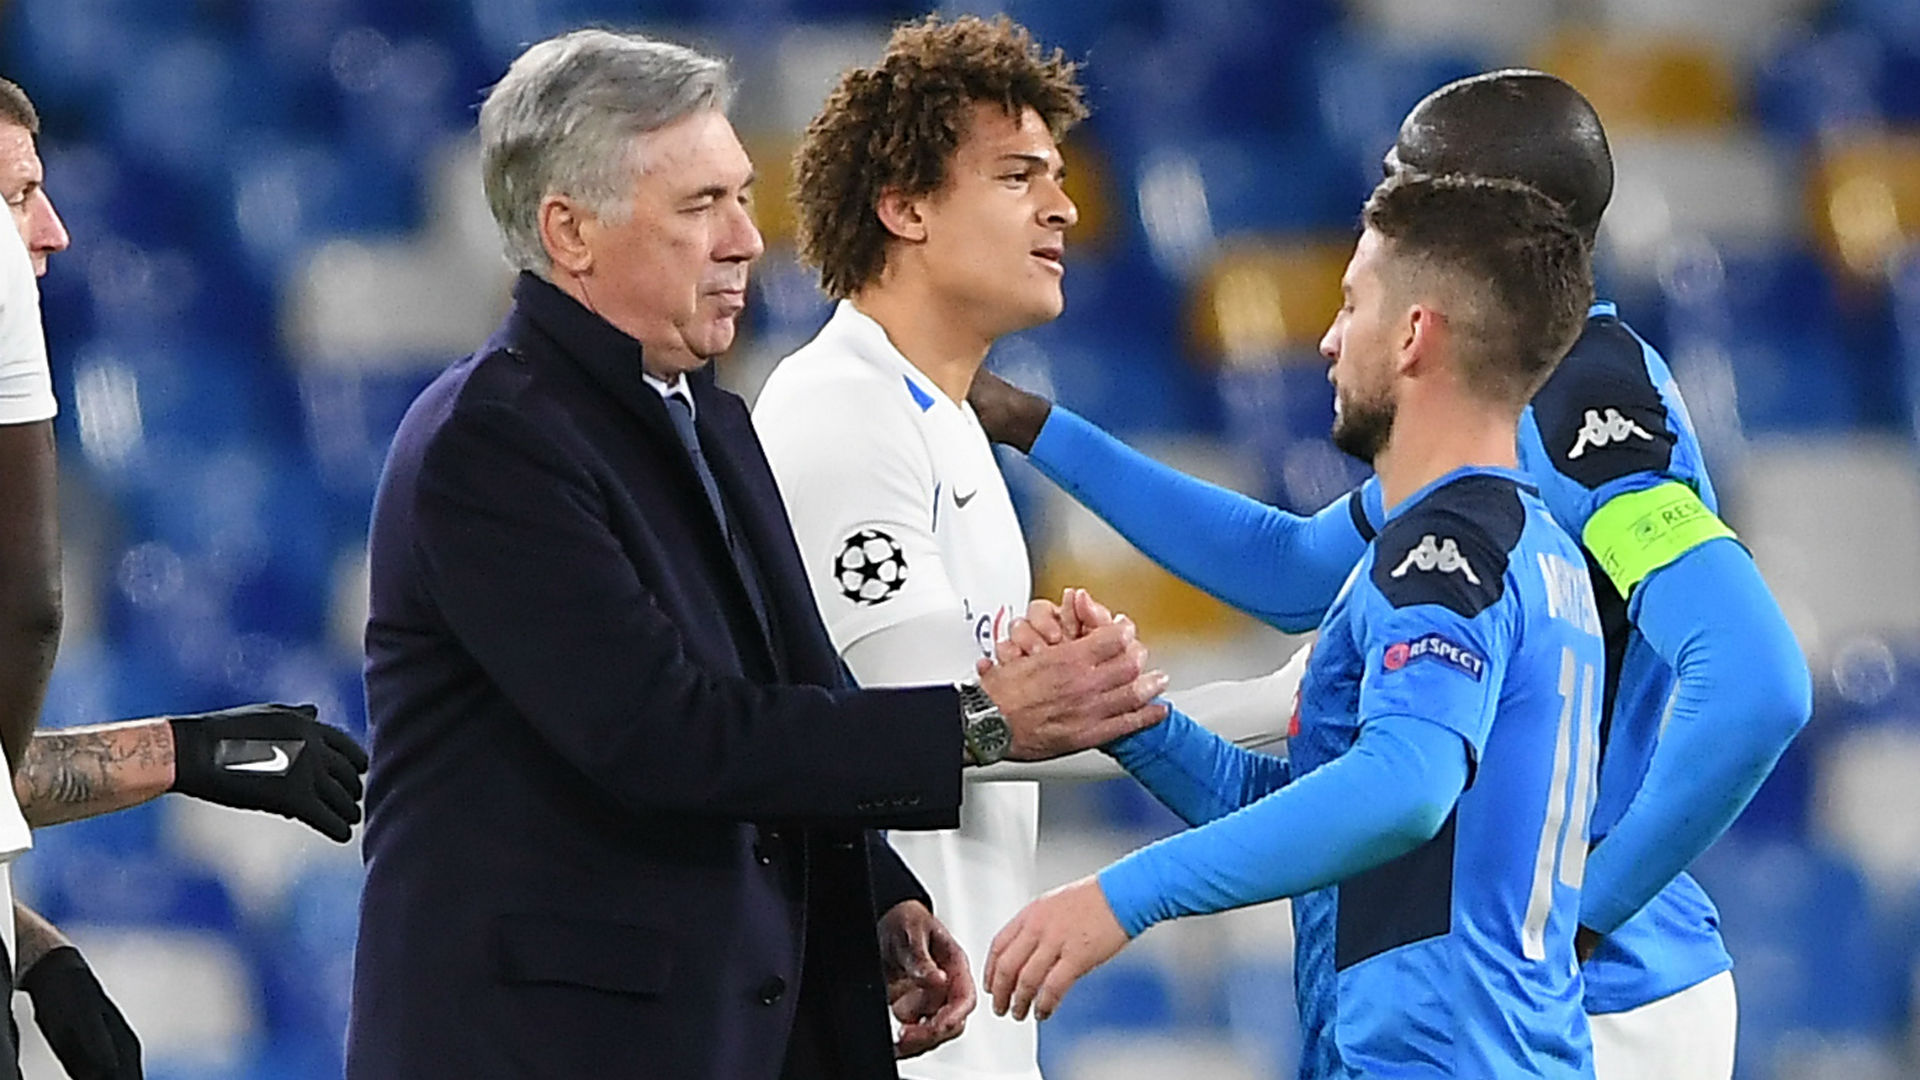 Napoli players pay tribute to 'special person' Ancelotti after sacking